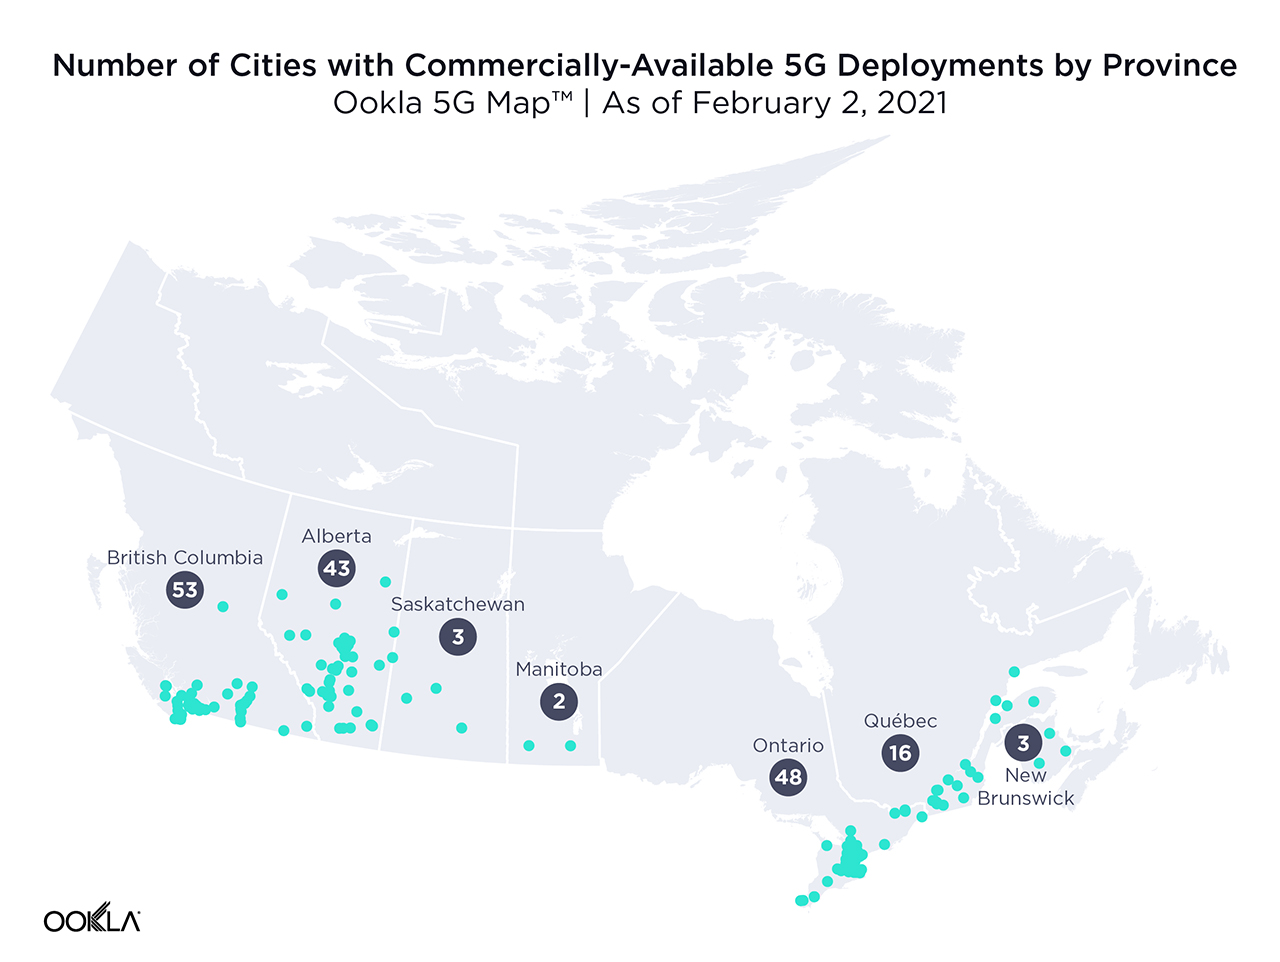 Provinces with 5G deployments